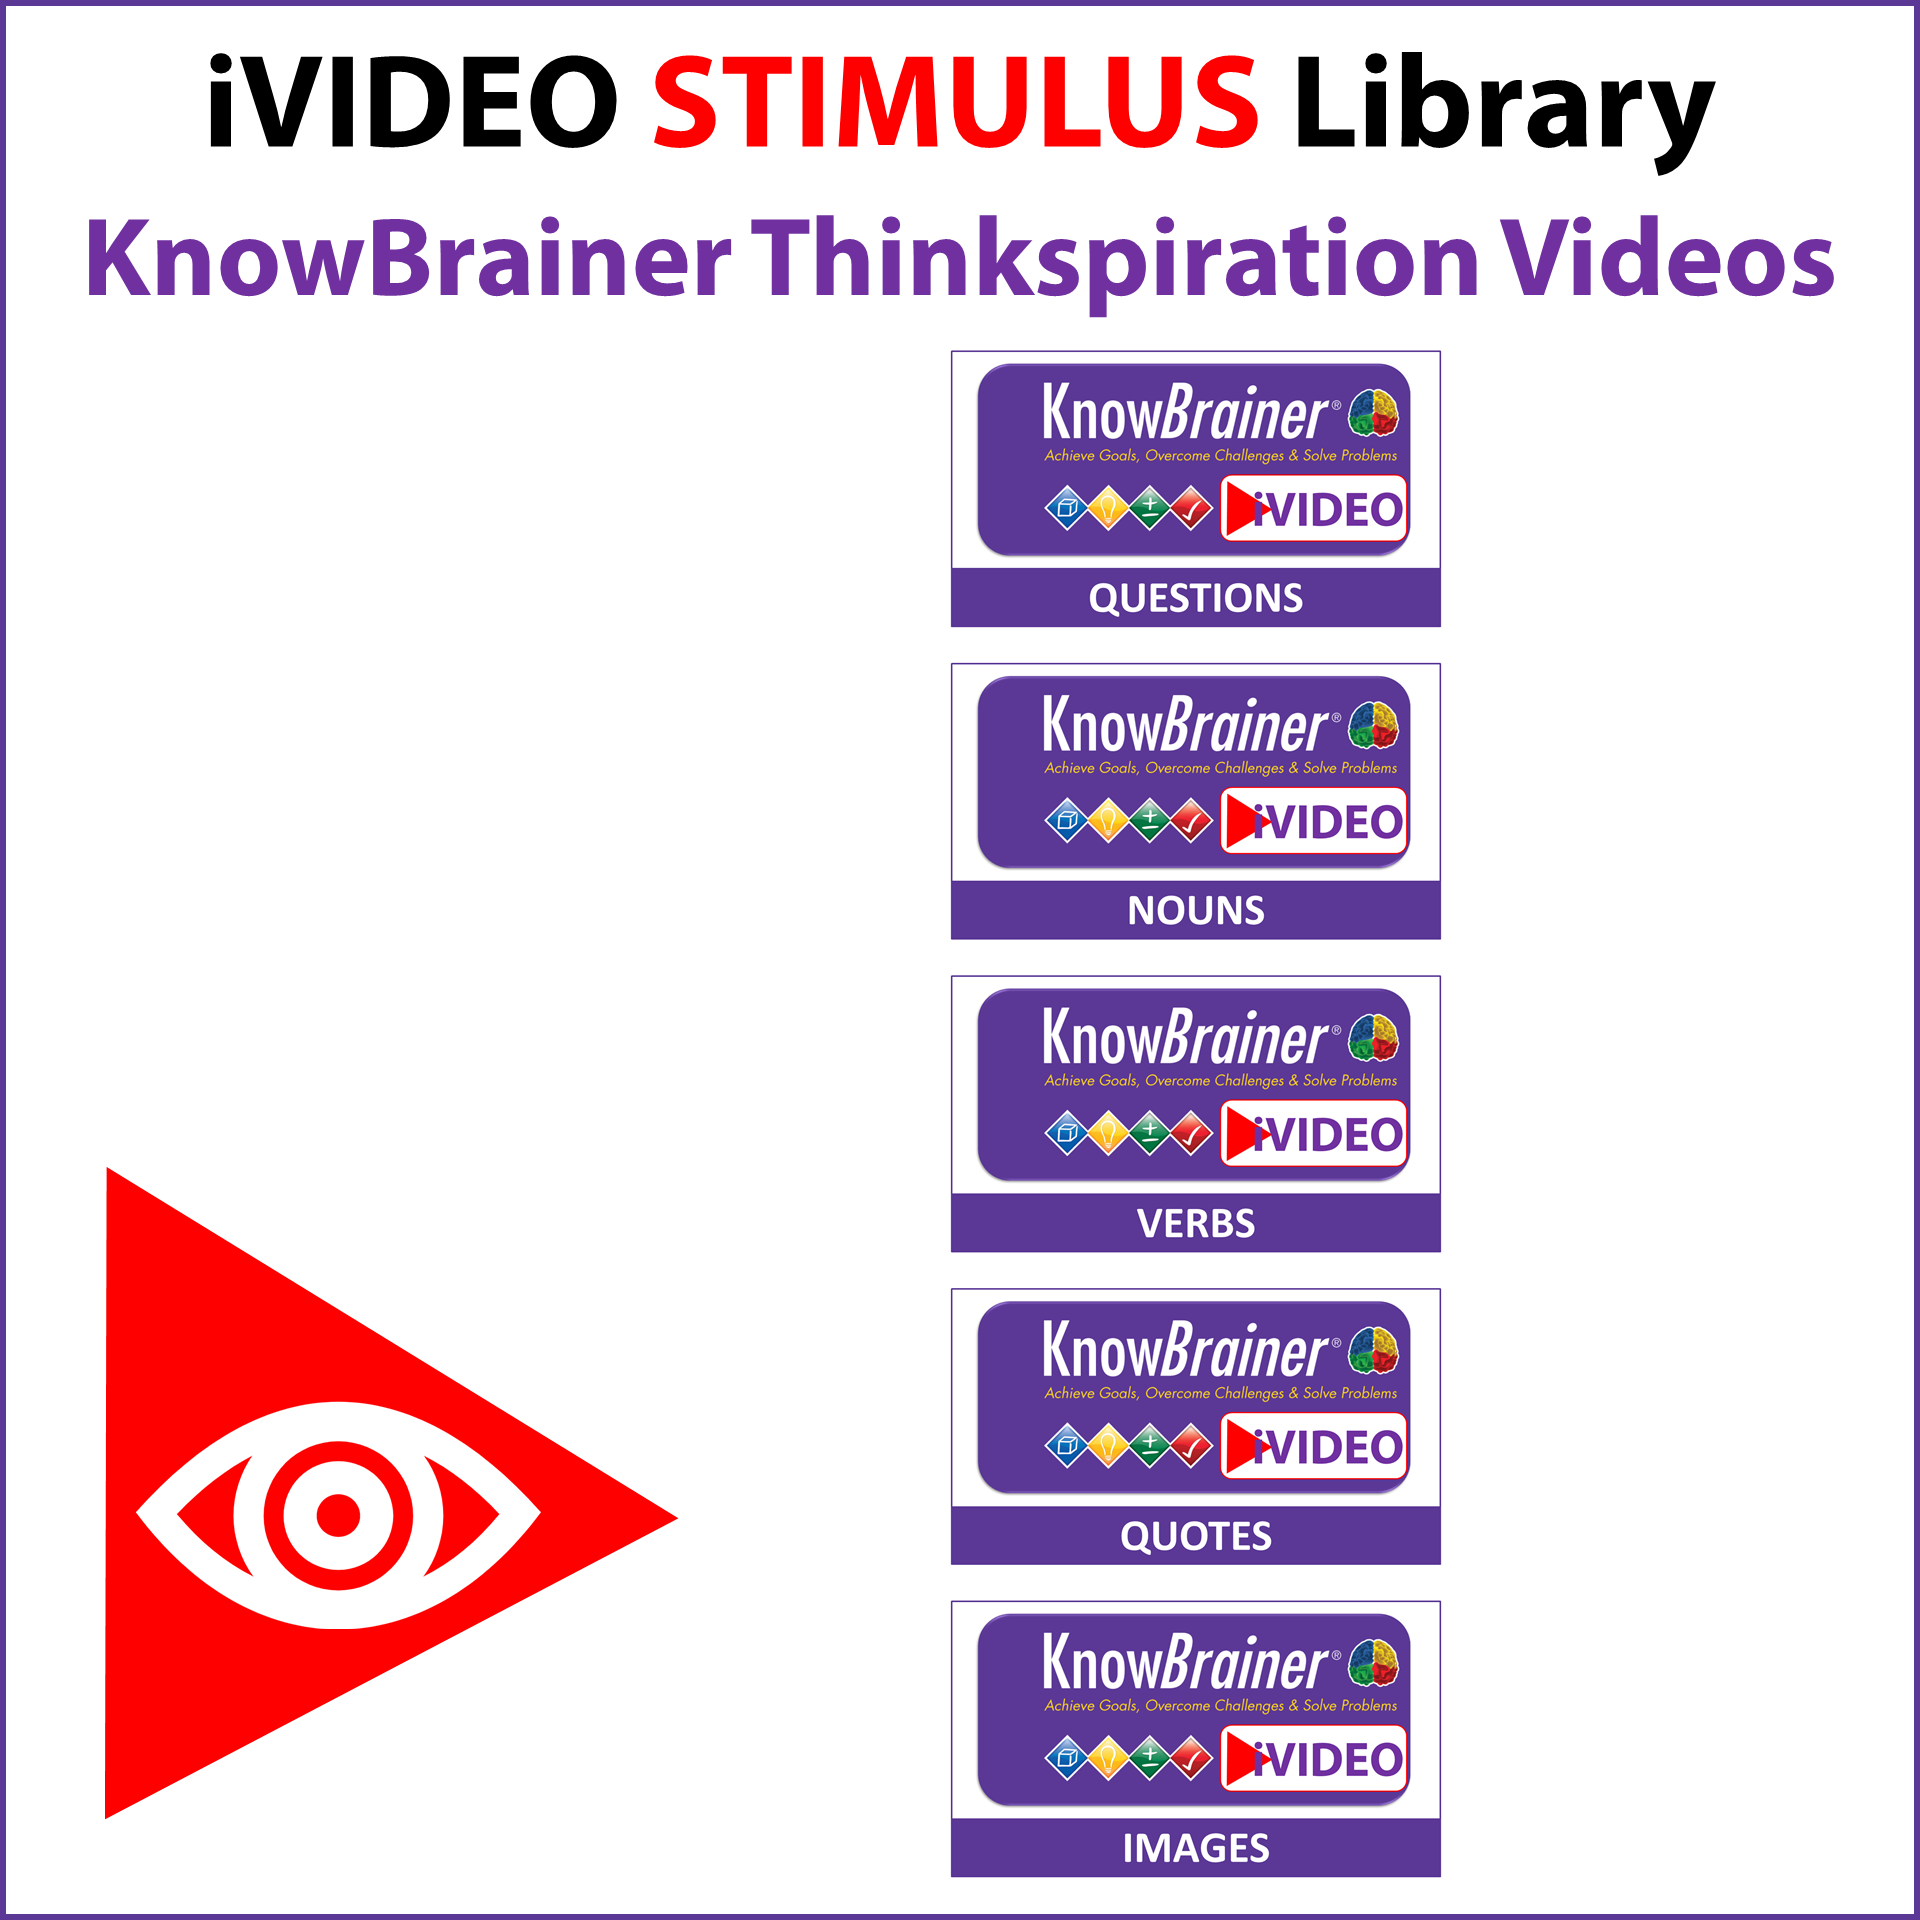 iVIDEO STIMULUS Library KnowBrainer Thinkspiration Videos